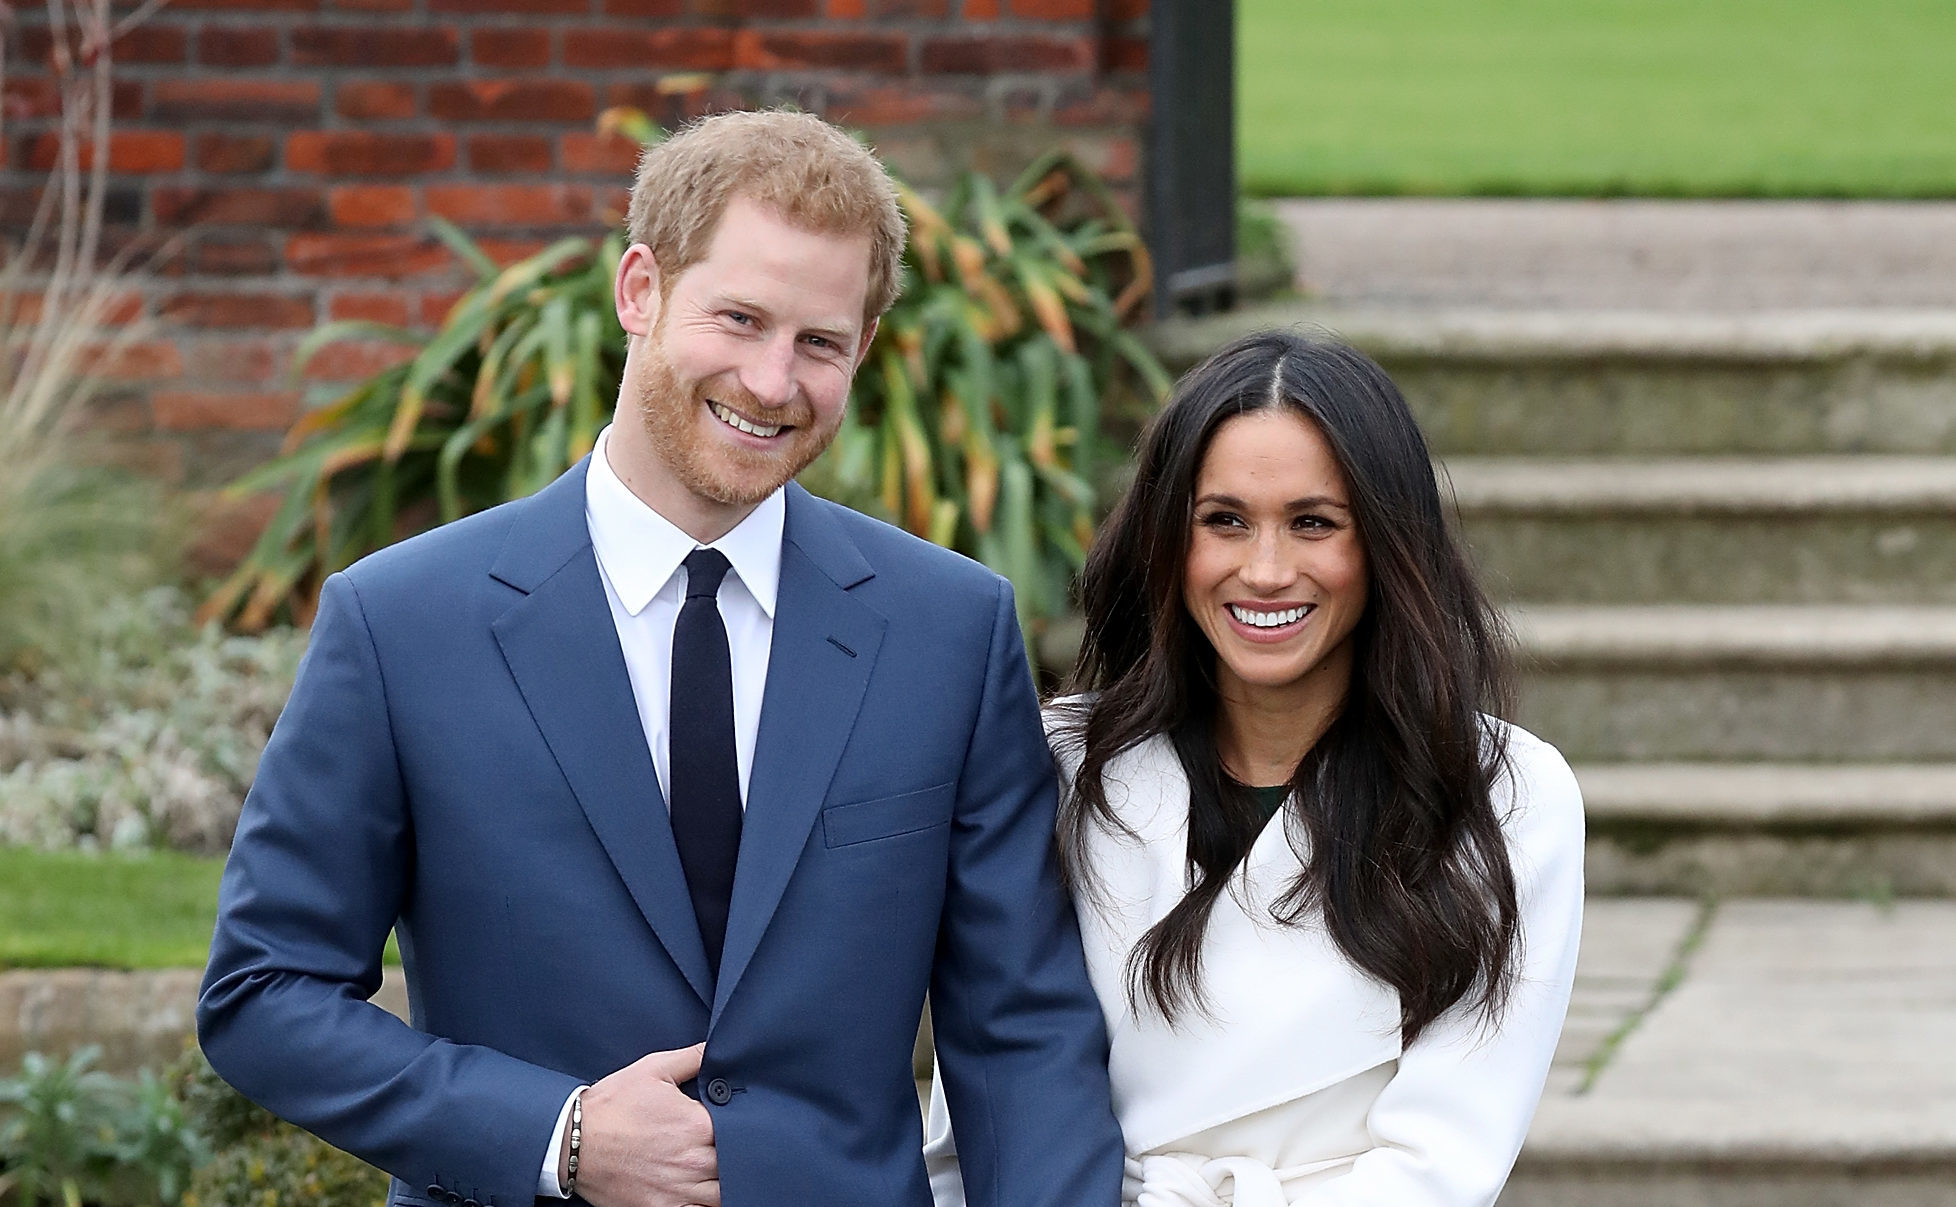 Prince Harry and Meghan Markle (Chris Jackson/Chris Jackson/Getty Images)